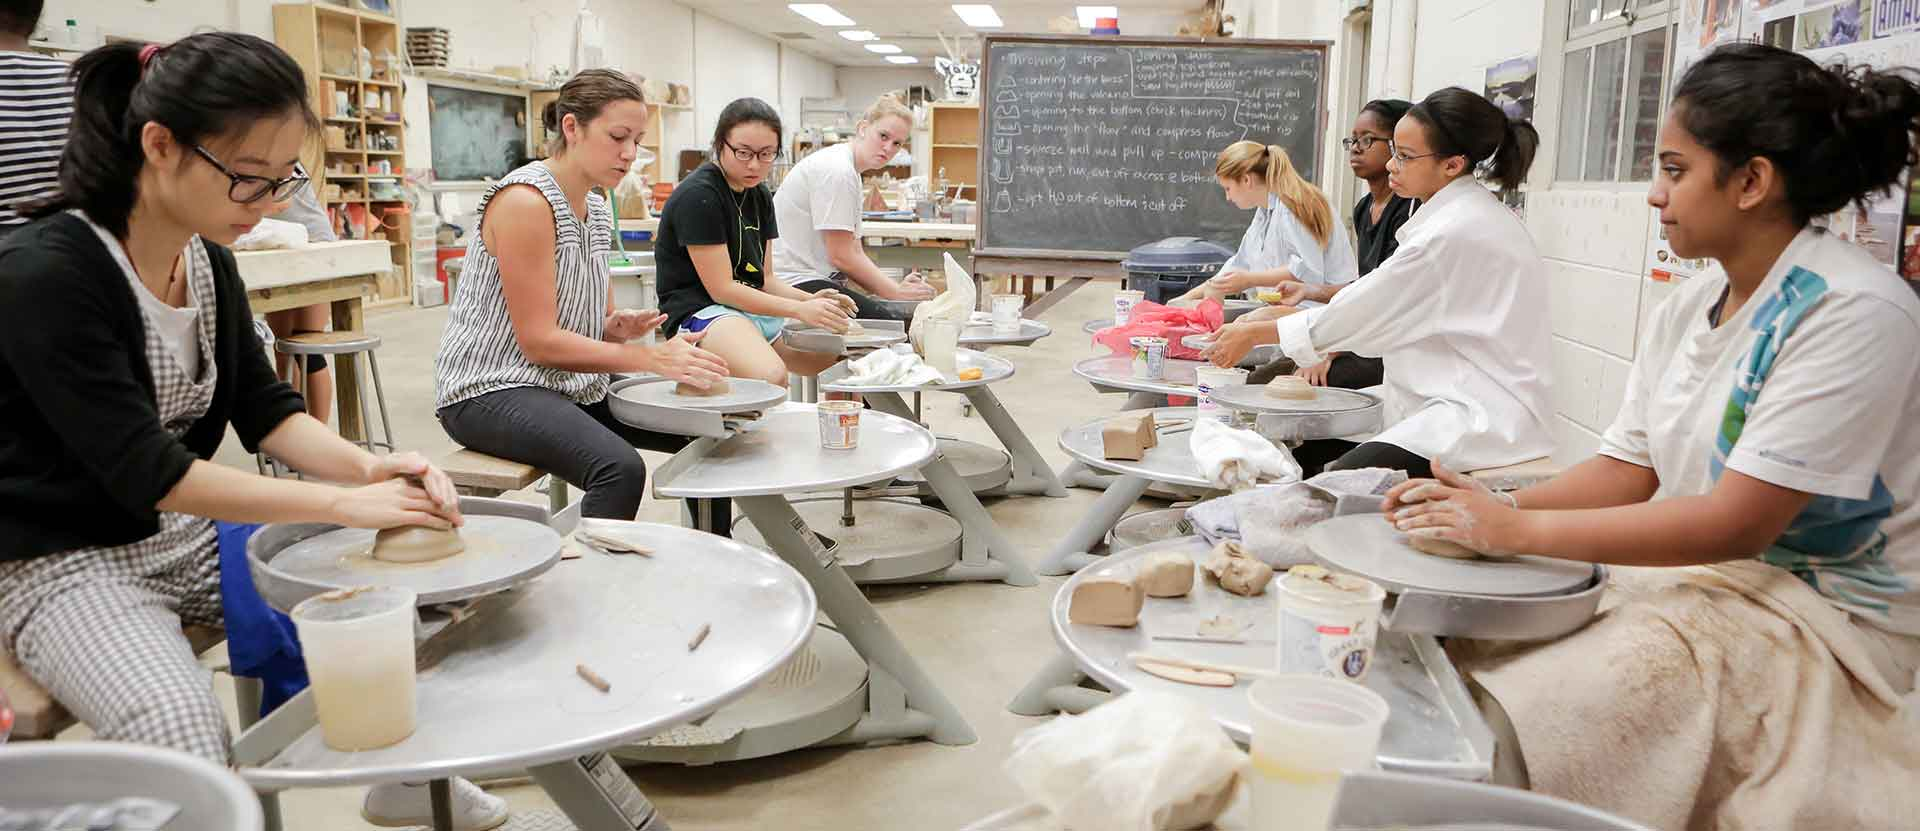 Studio art students create bowls on pottery wheel